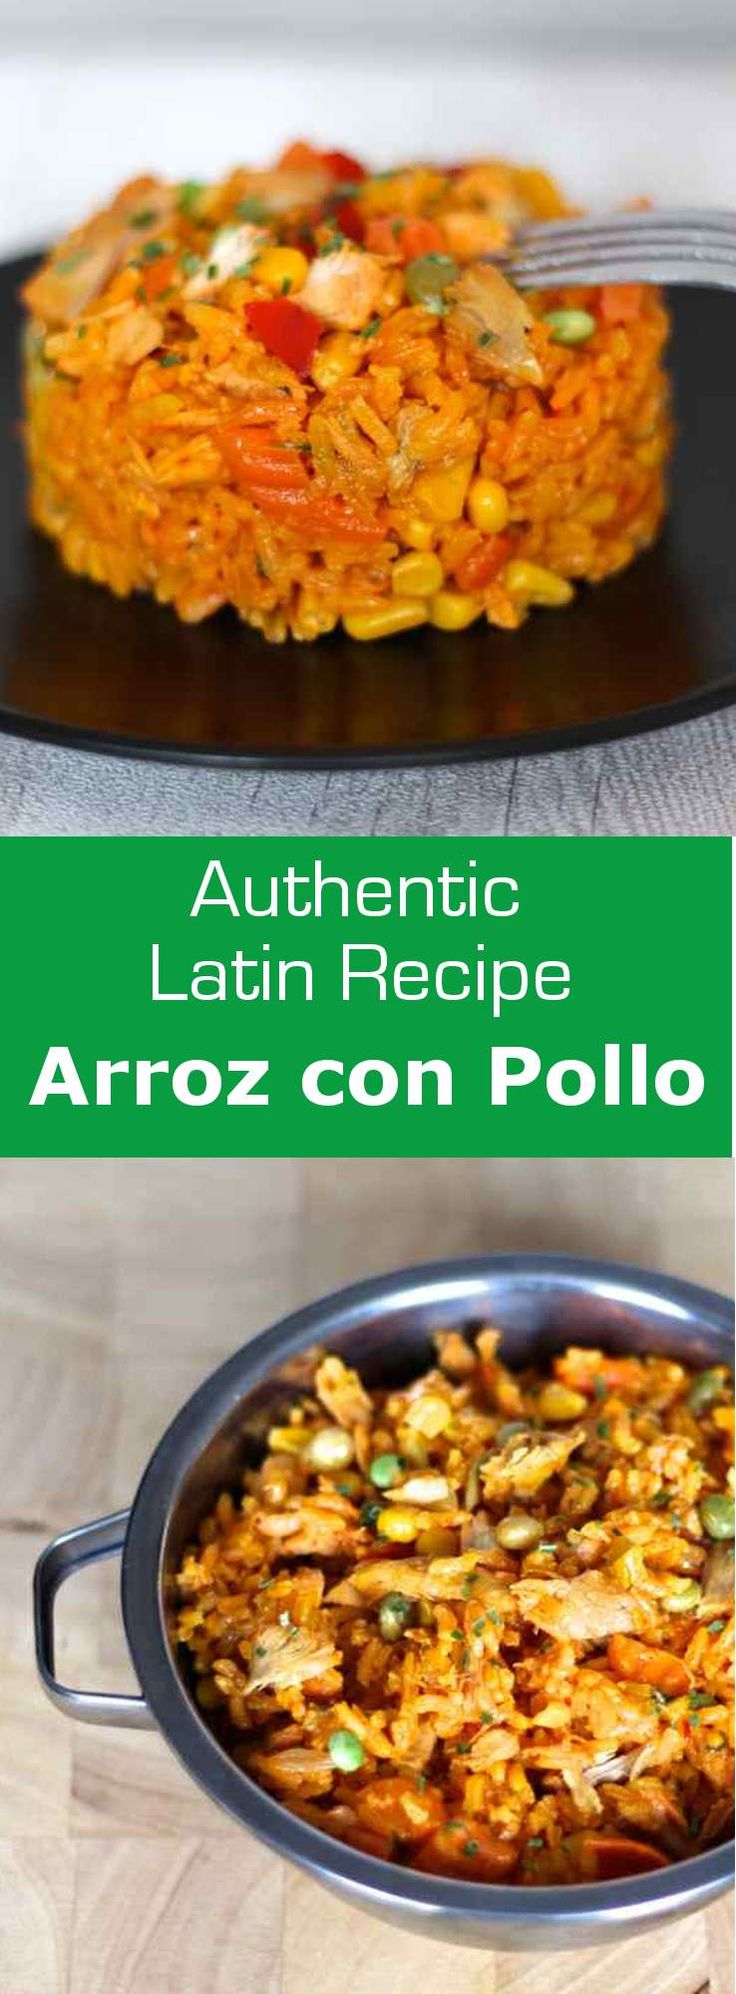 96 best 196 latin american recipes images on pinterest american arroz con pollo is a traditional latin american recipe with rice chicken and vegetables that forumfinder Images